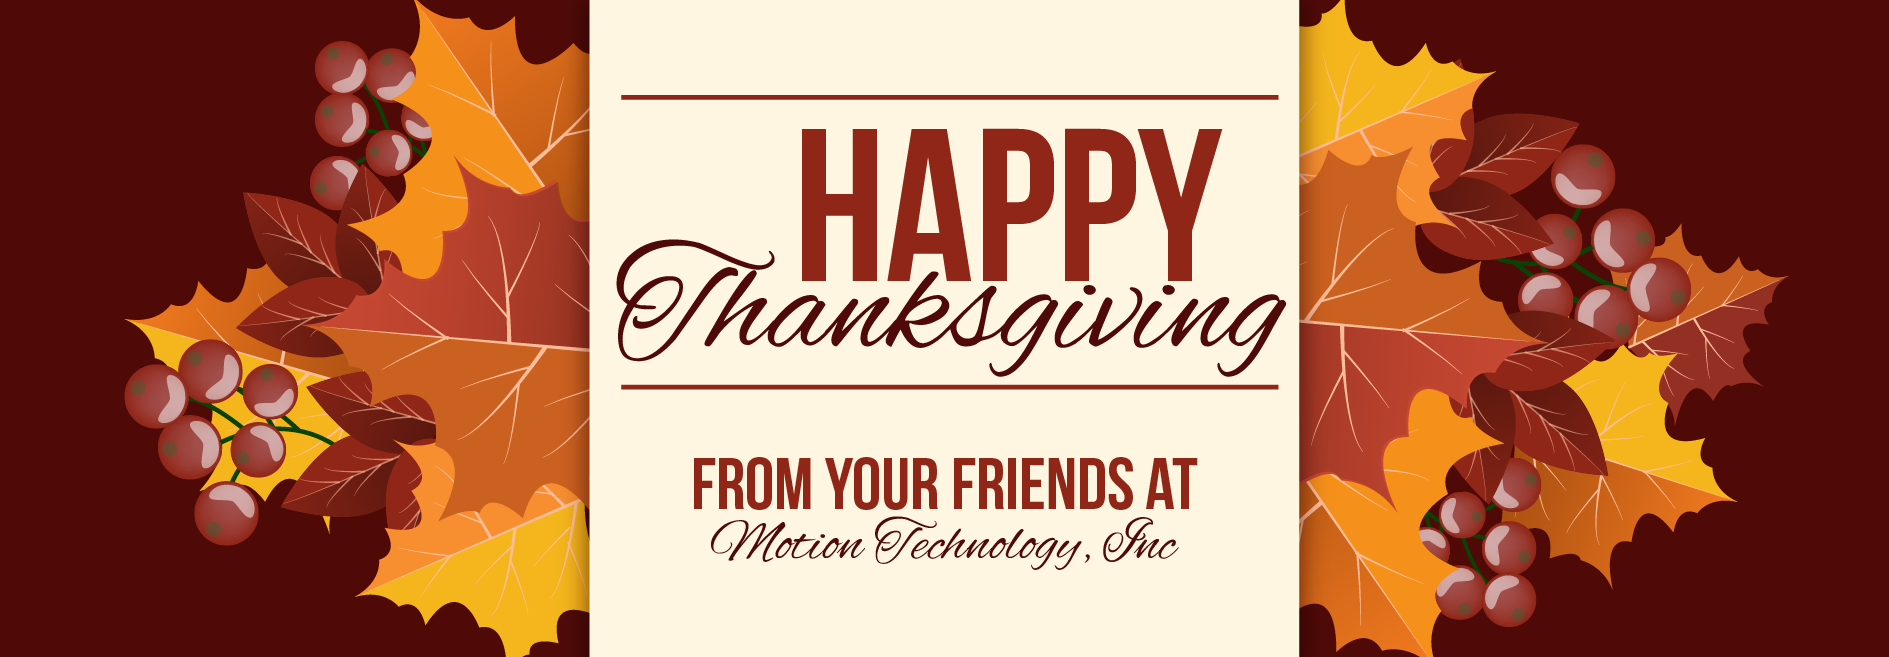 From The Team   Expressing Thanksgiving Gratitude